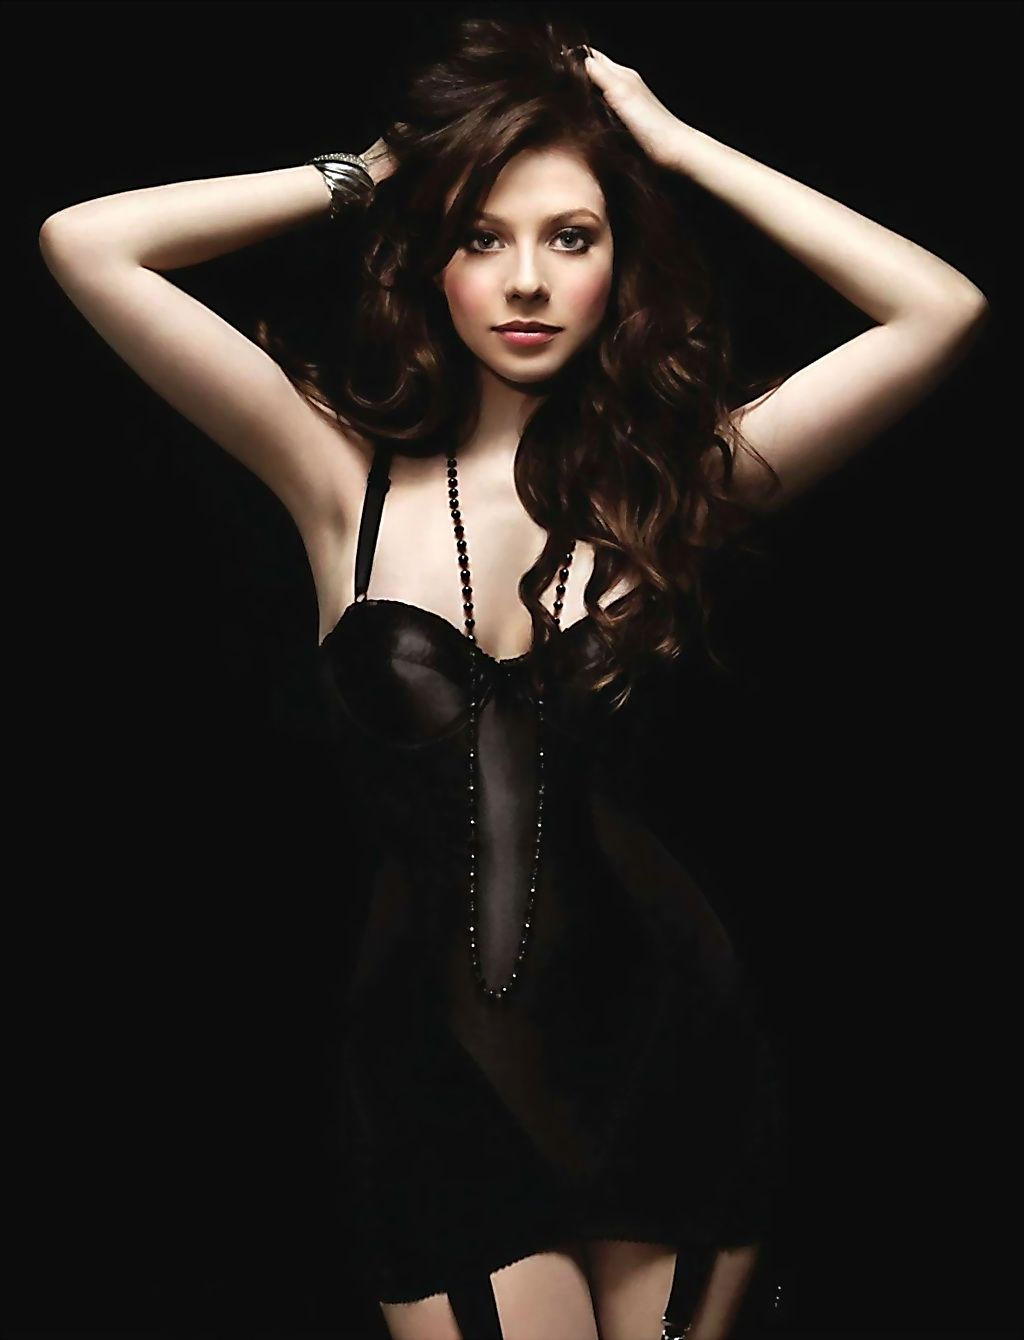 Hot Michelle Trachtenberg nude photos 2019